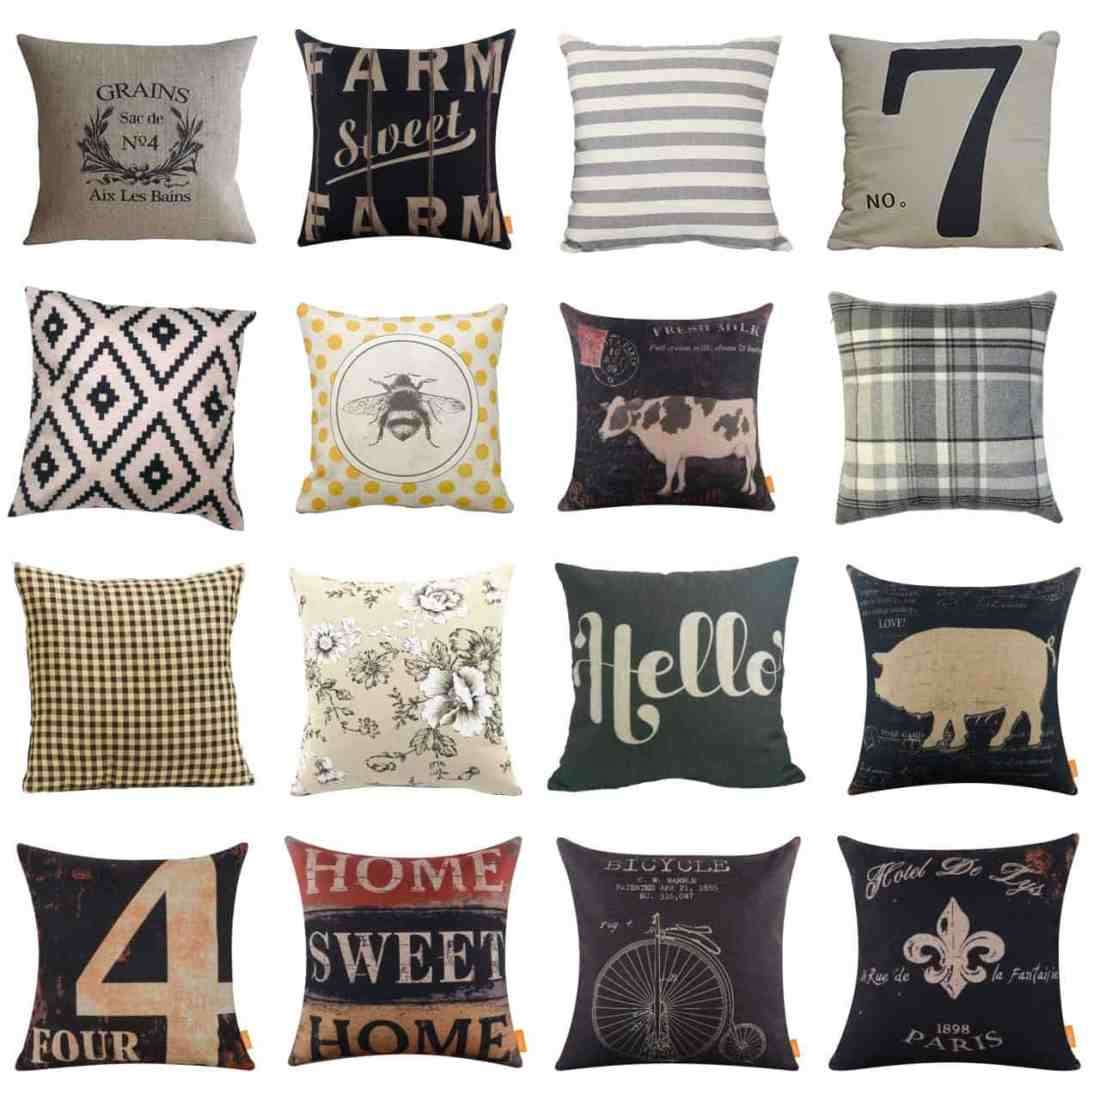 Farmhouse style pillows from Amazon